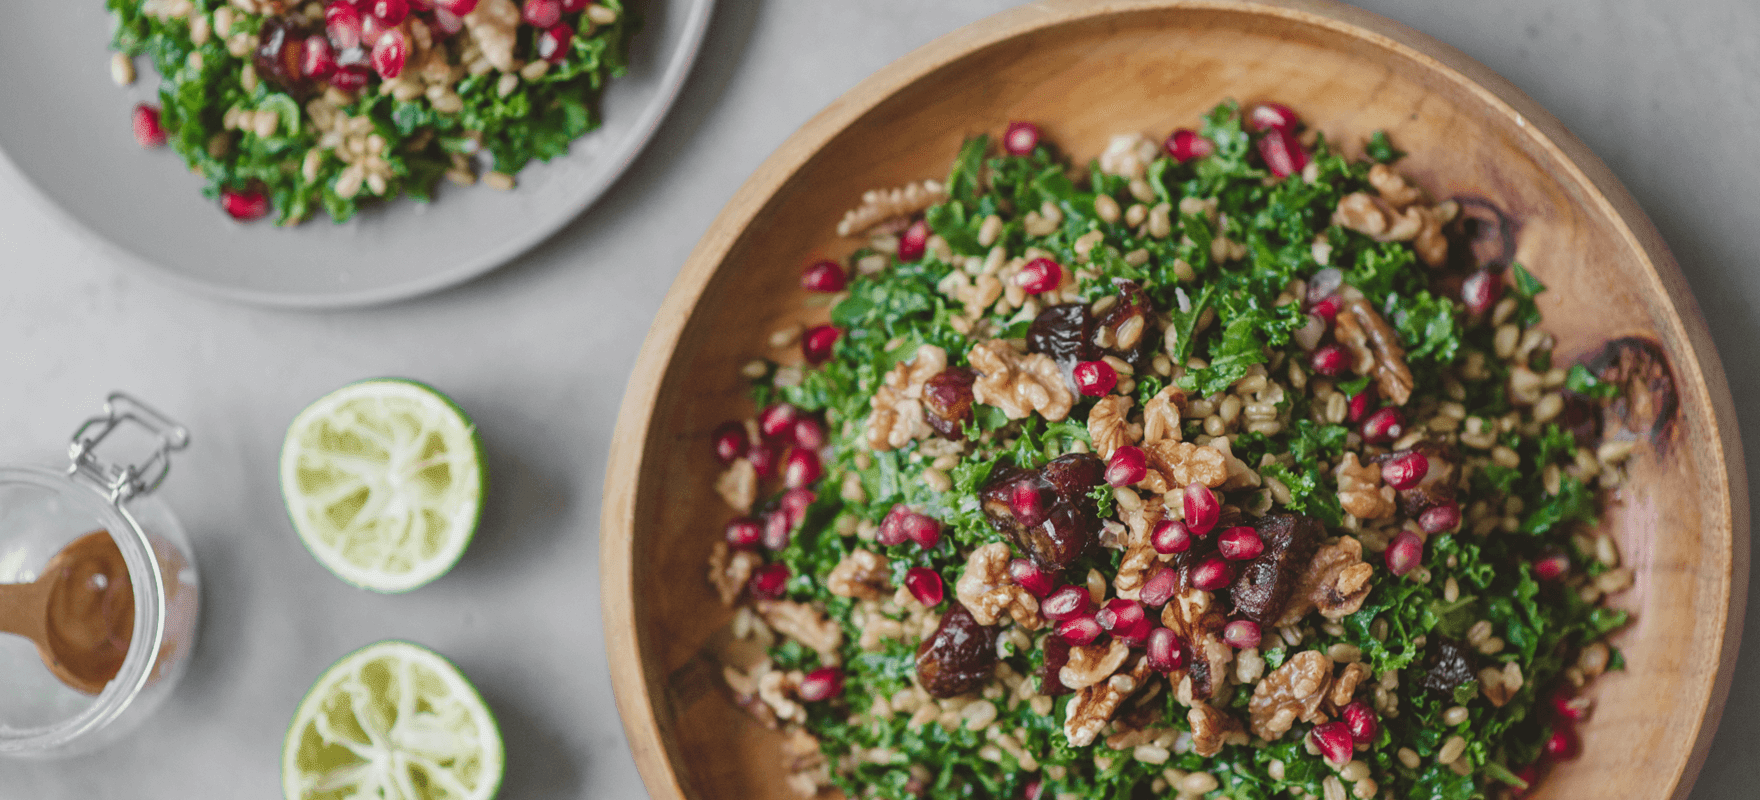 Middle Eastern farro salad image 1